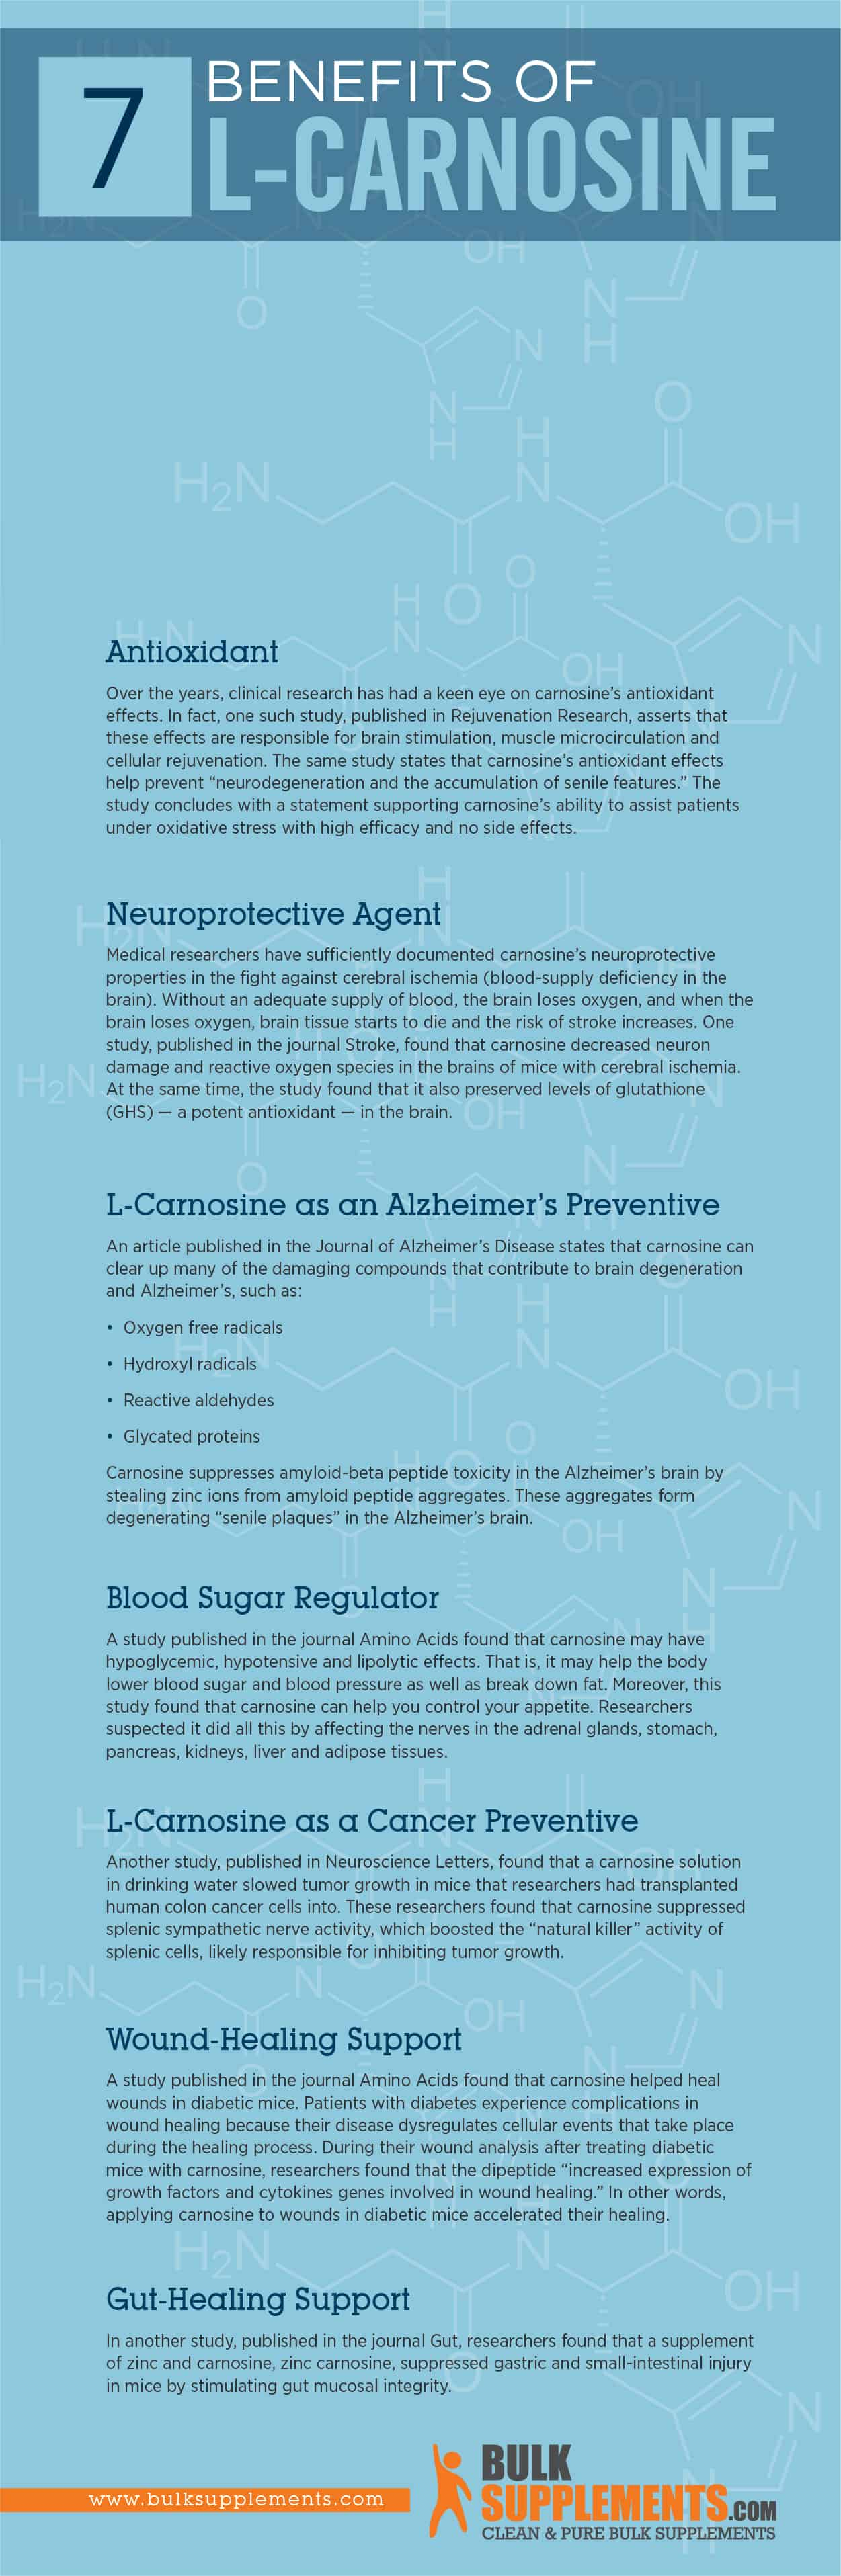 L-Carnosine Benefits